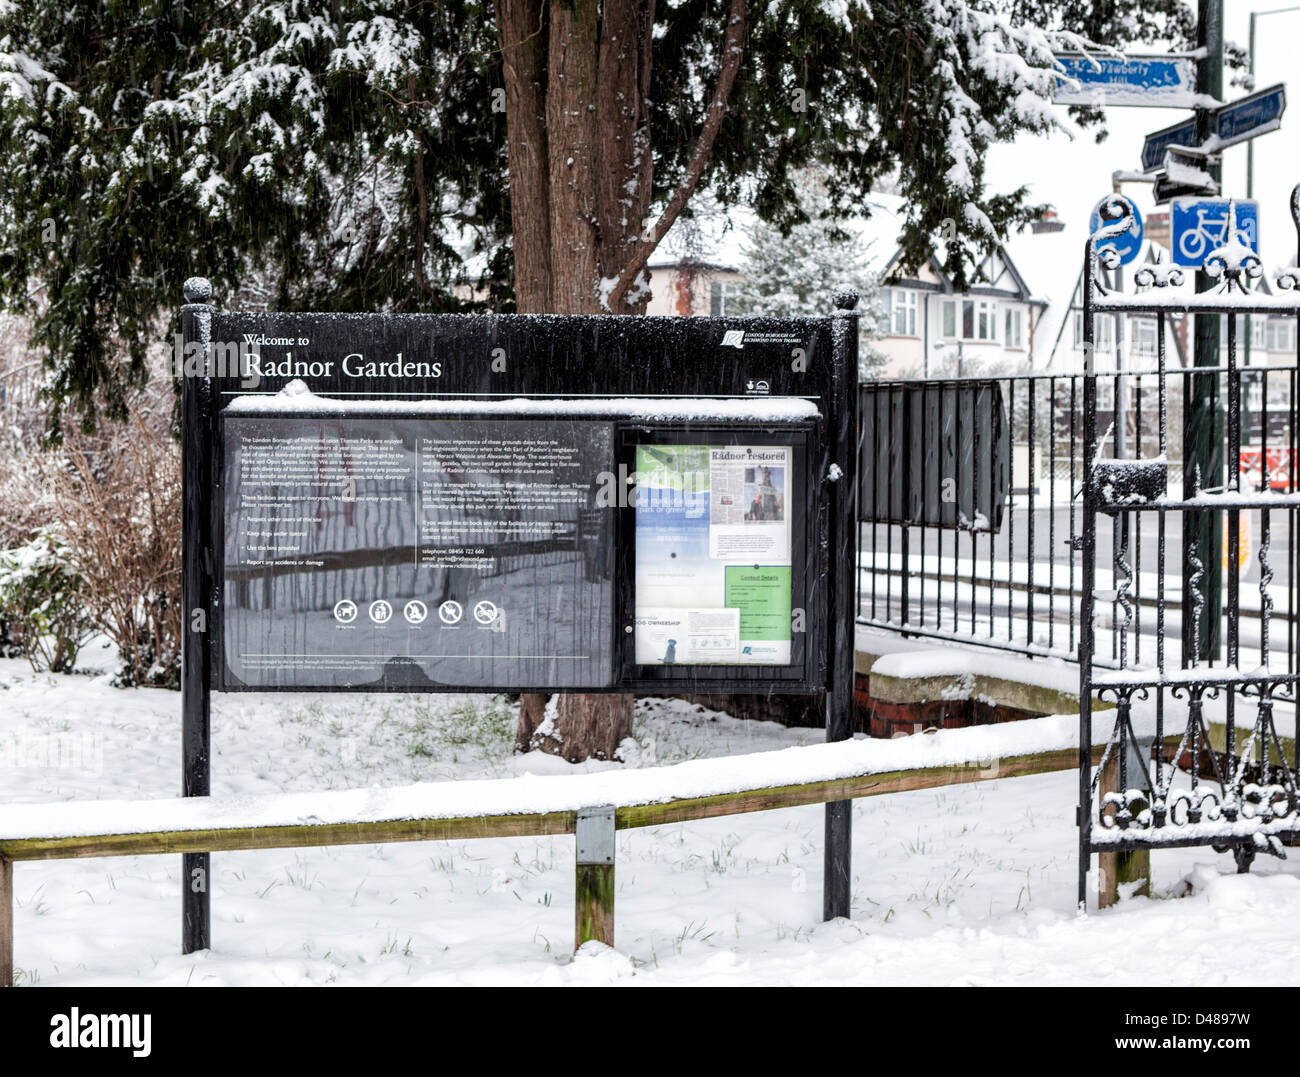 Snow covered Entrance and information board  in Winter- Radnor Gardens, Strawberry Hill,Greater London,UK - Stock Image